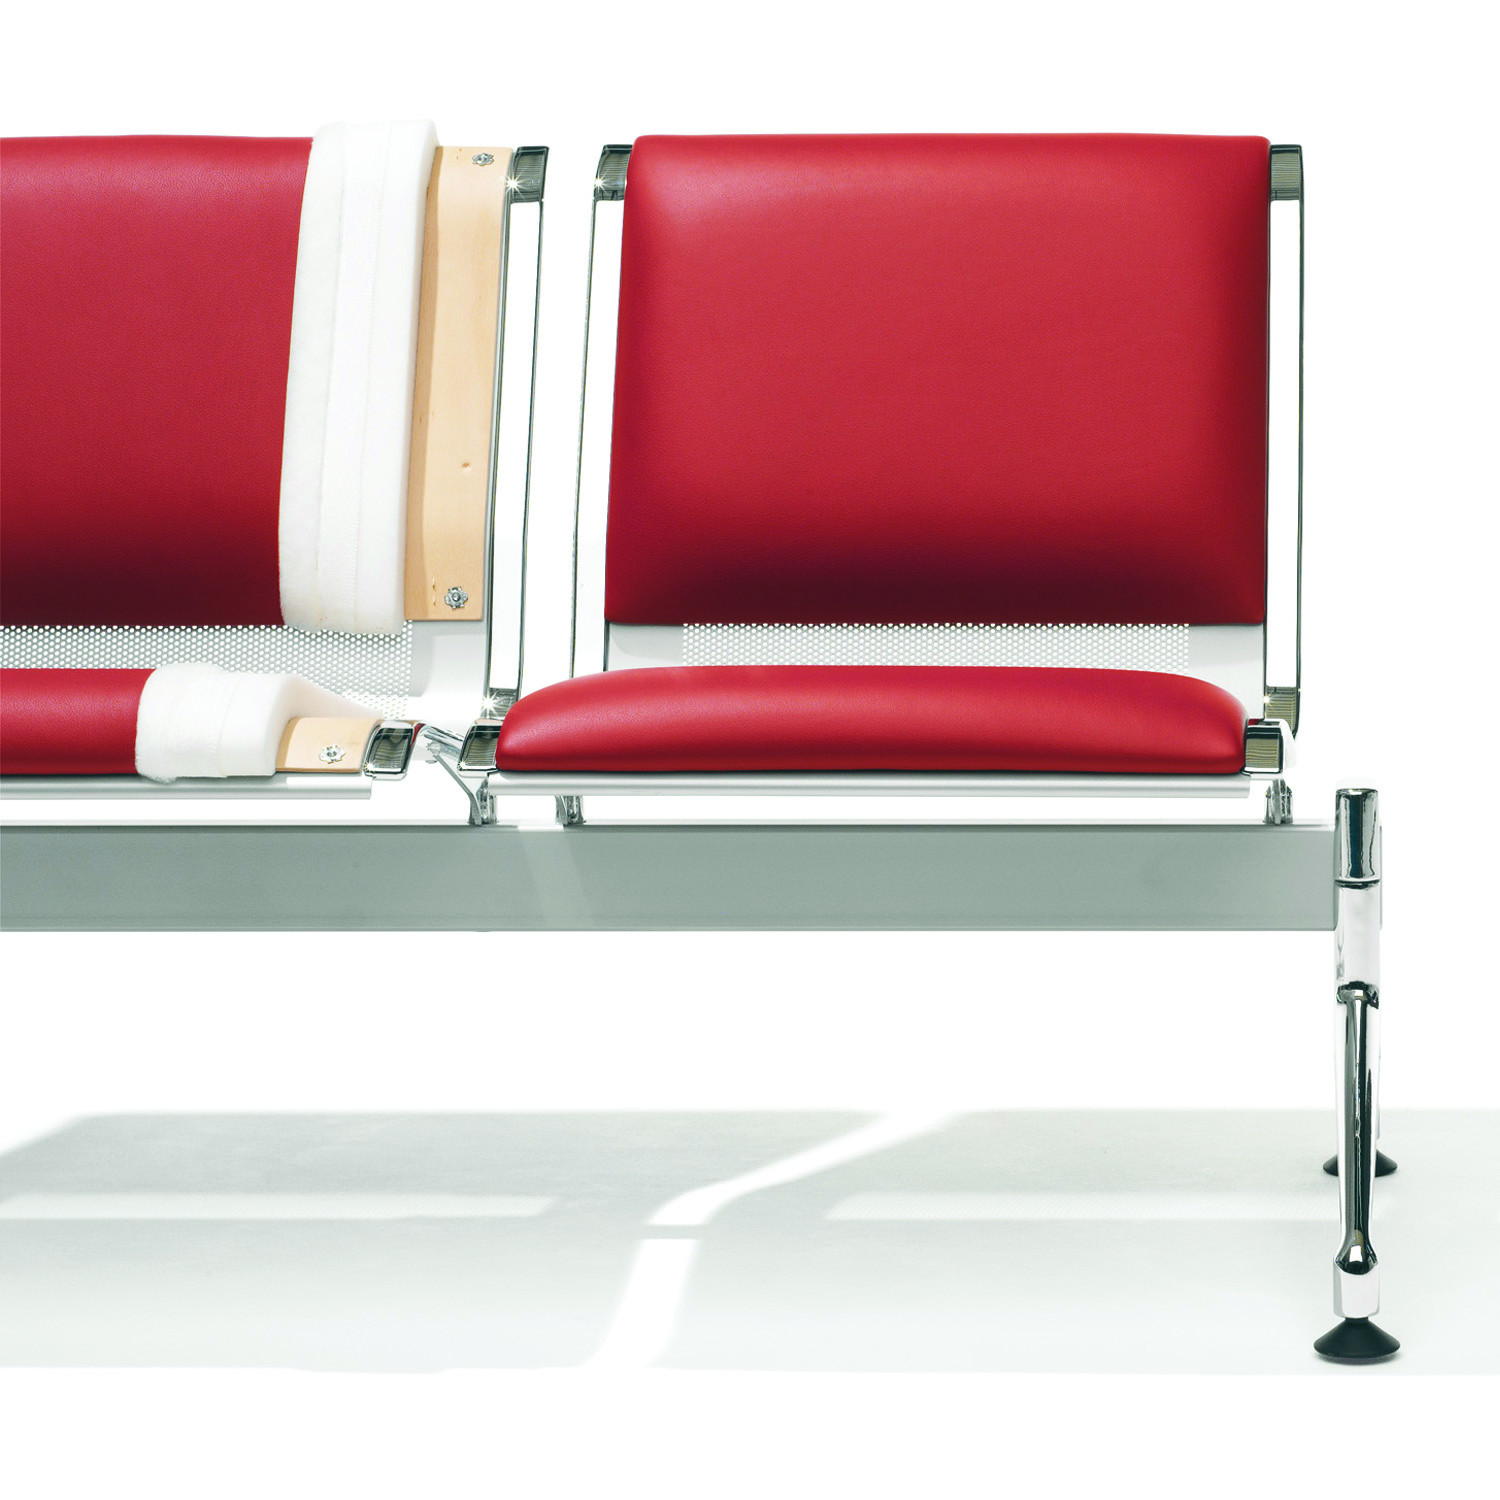 7100 Terminal Chair with fom seat pad and foam back pad